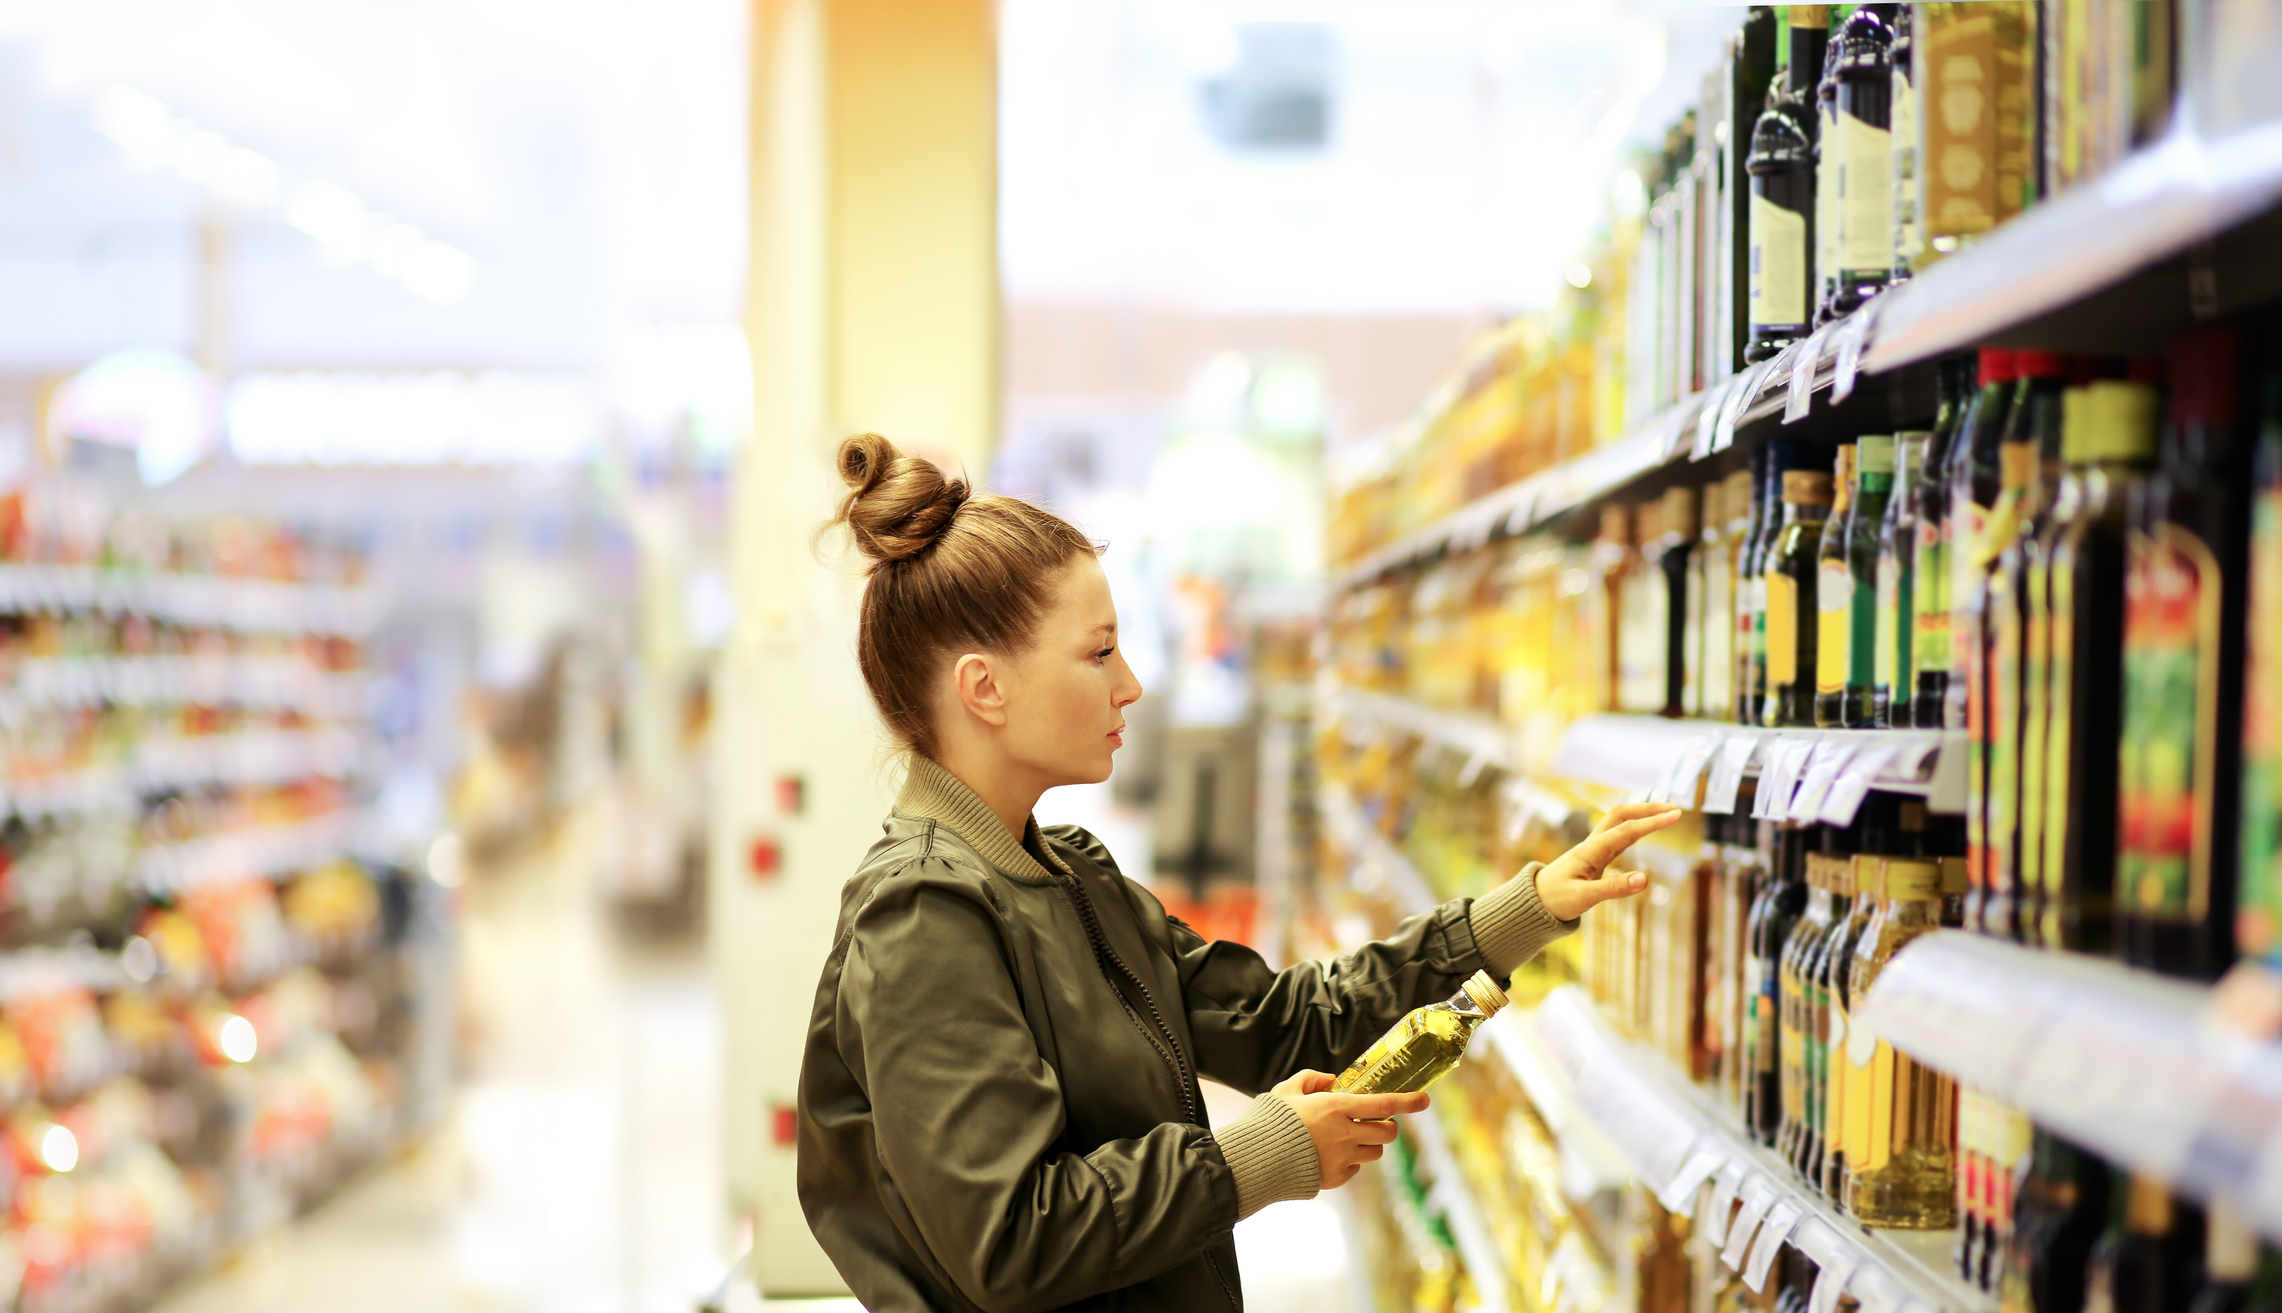 woman in dark green jacket looking at different product choices in the aisle of a grocery store